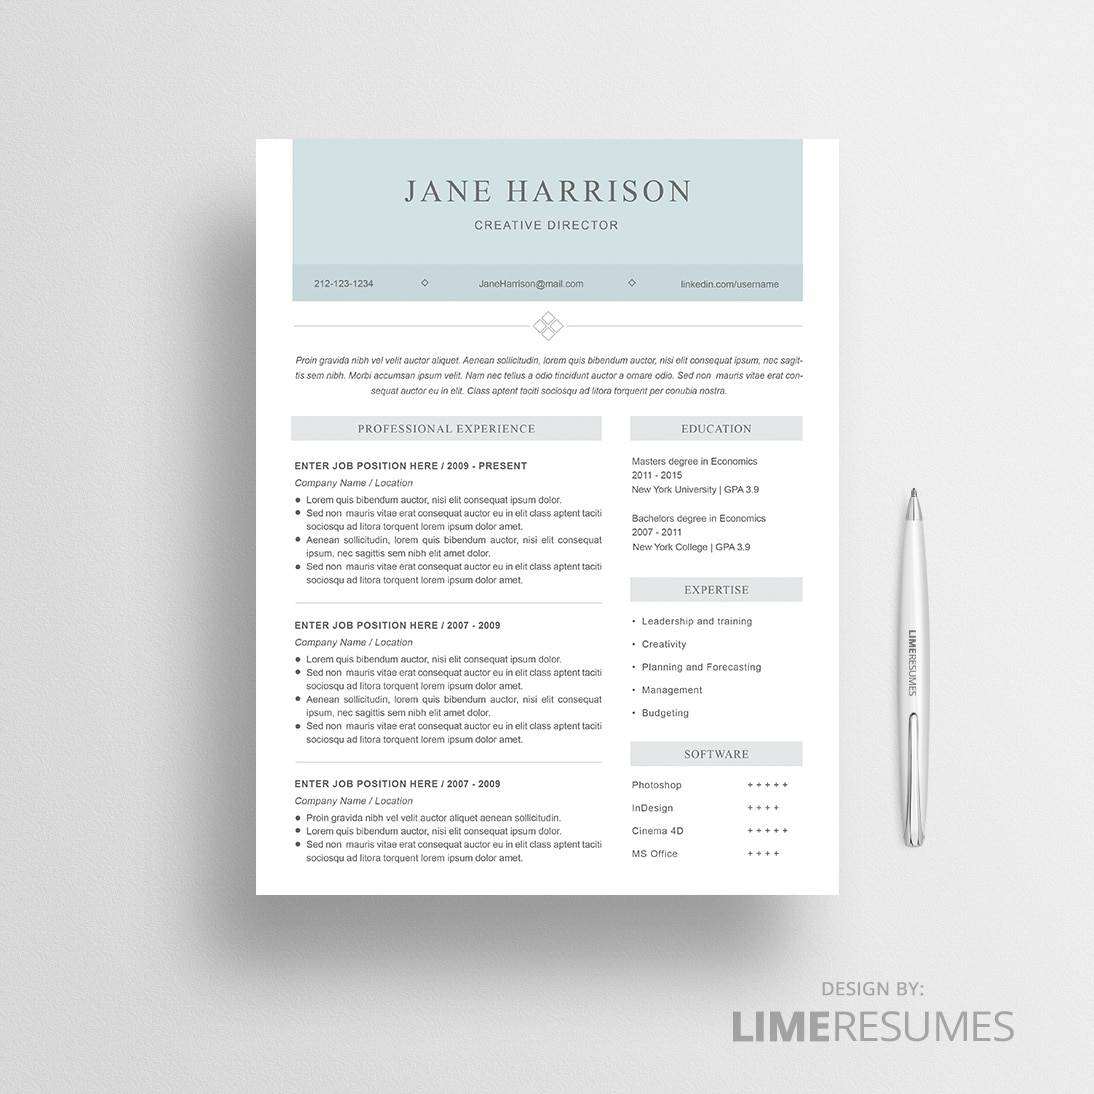 Microsoft Word Templates For Resumes Resume Template Cover Letter Template For Word